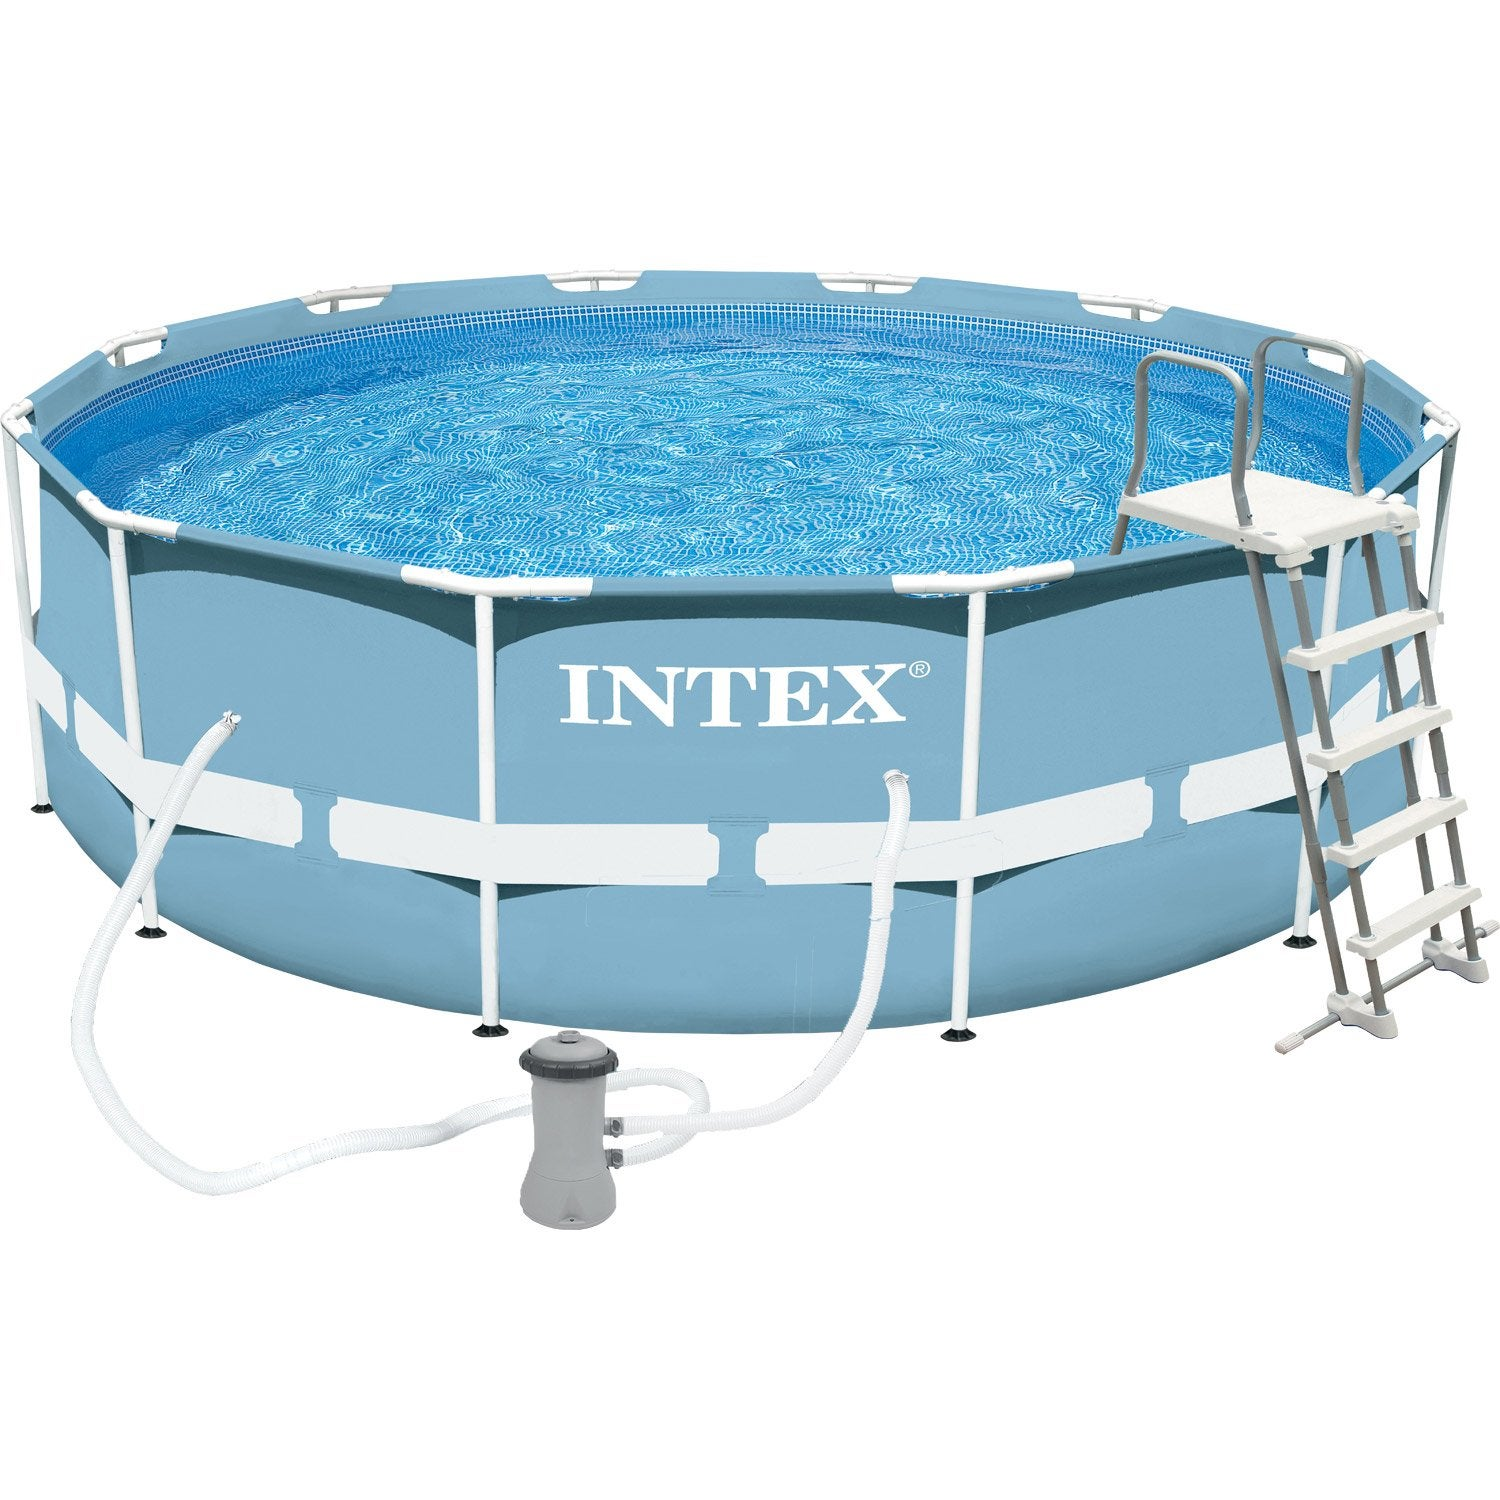 Piscine hors sol autoportante tubulaire prism frame intex for Piscine demontable hors sol